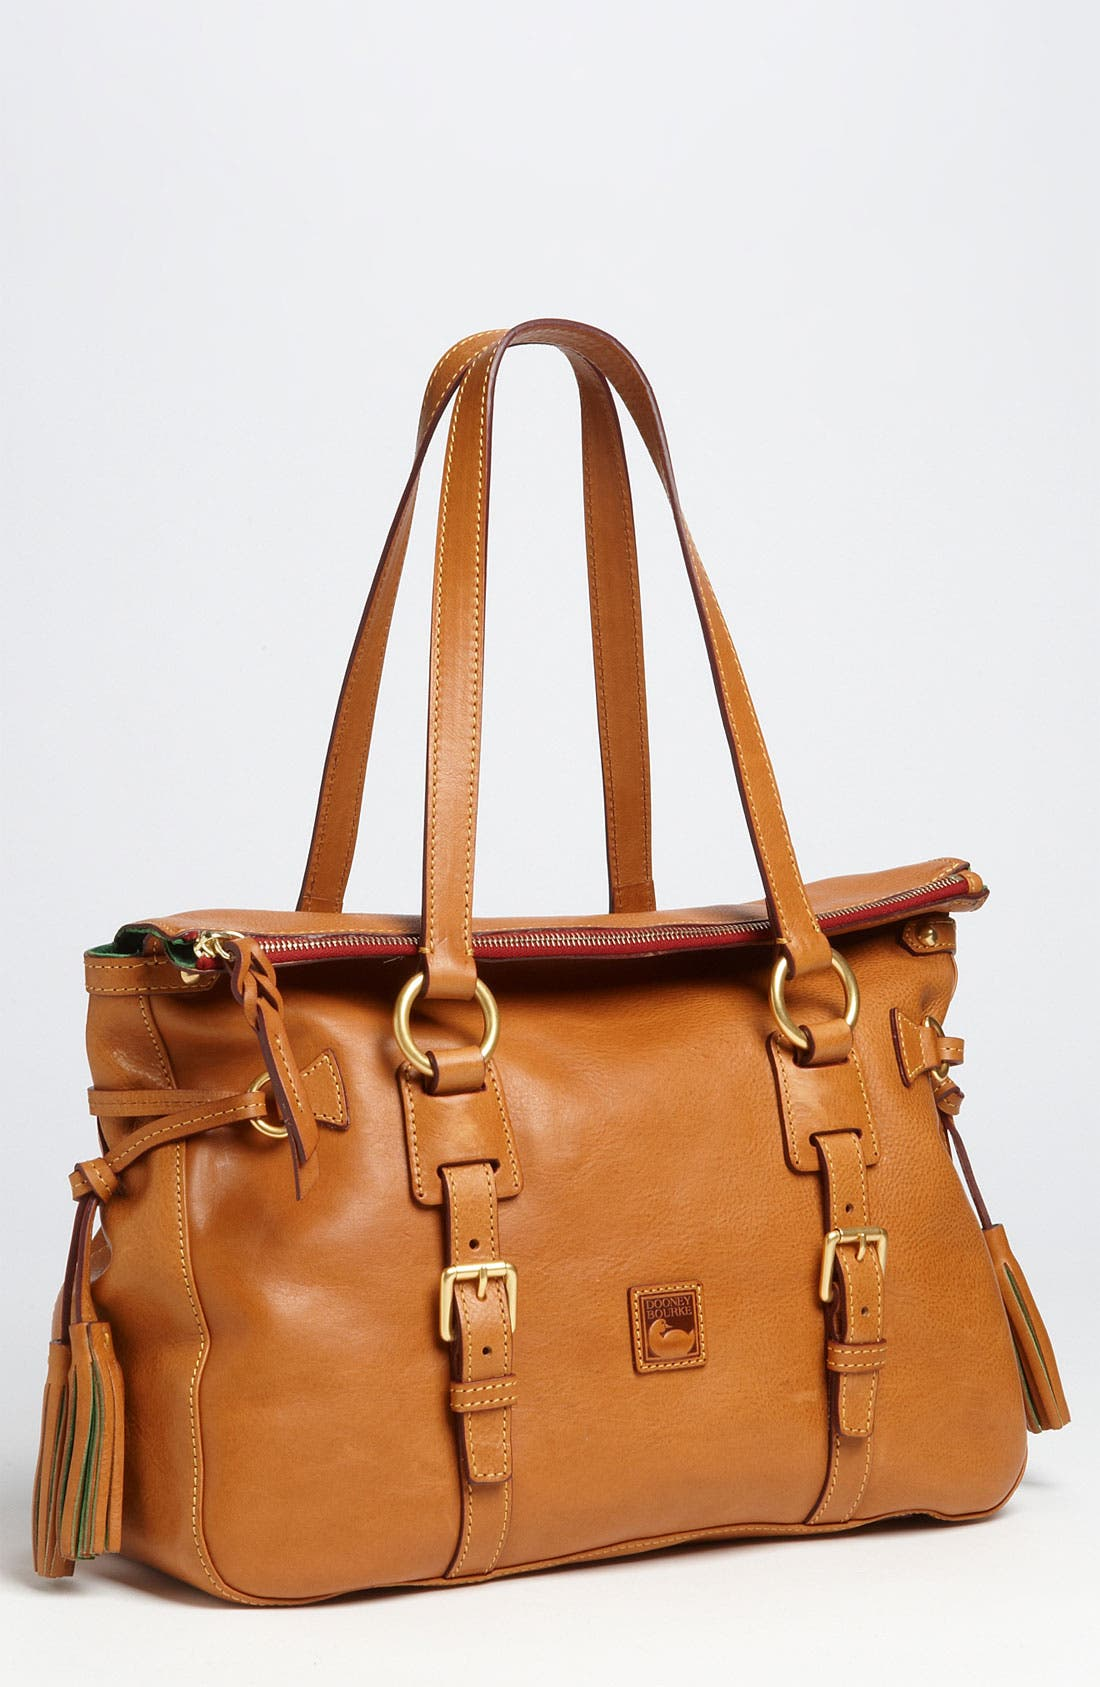 Alternate Image 1 Selected - Dooney & Bourke 'Florentine' Vachetta Leather Satchel